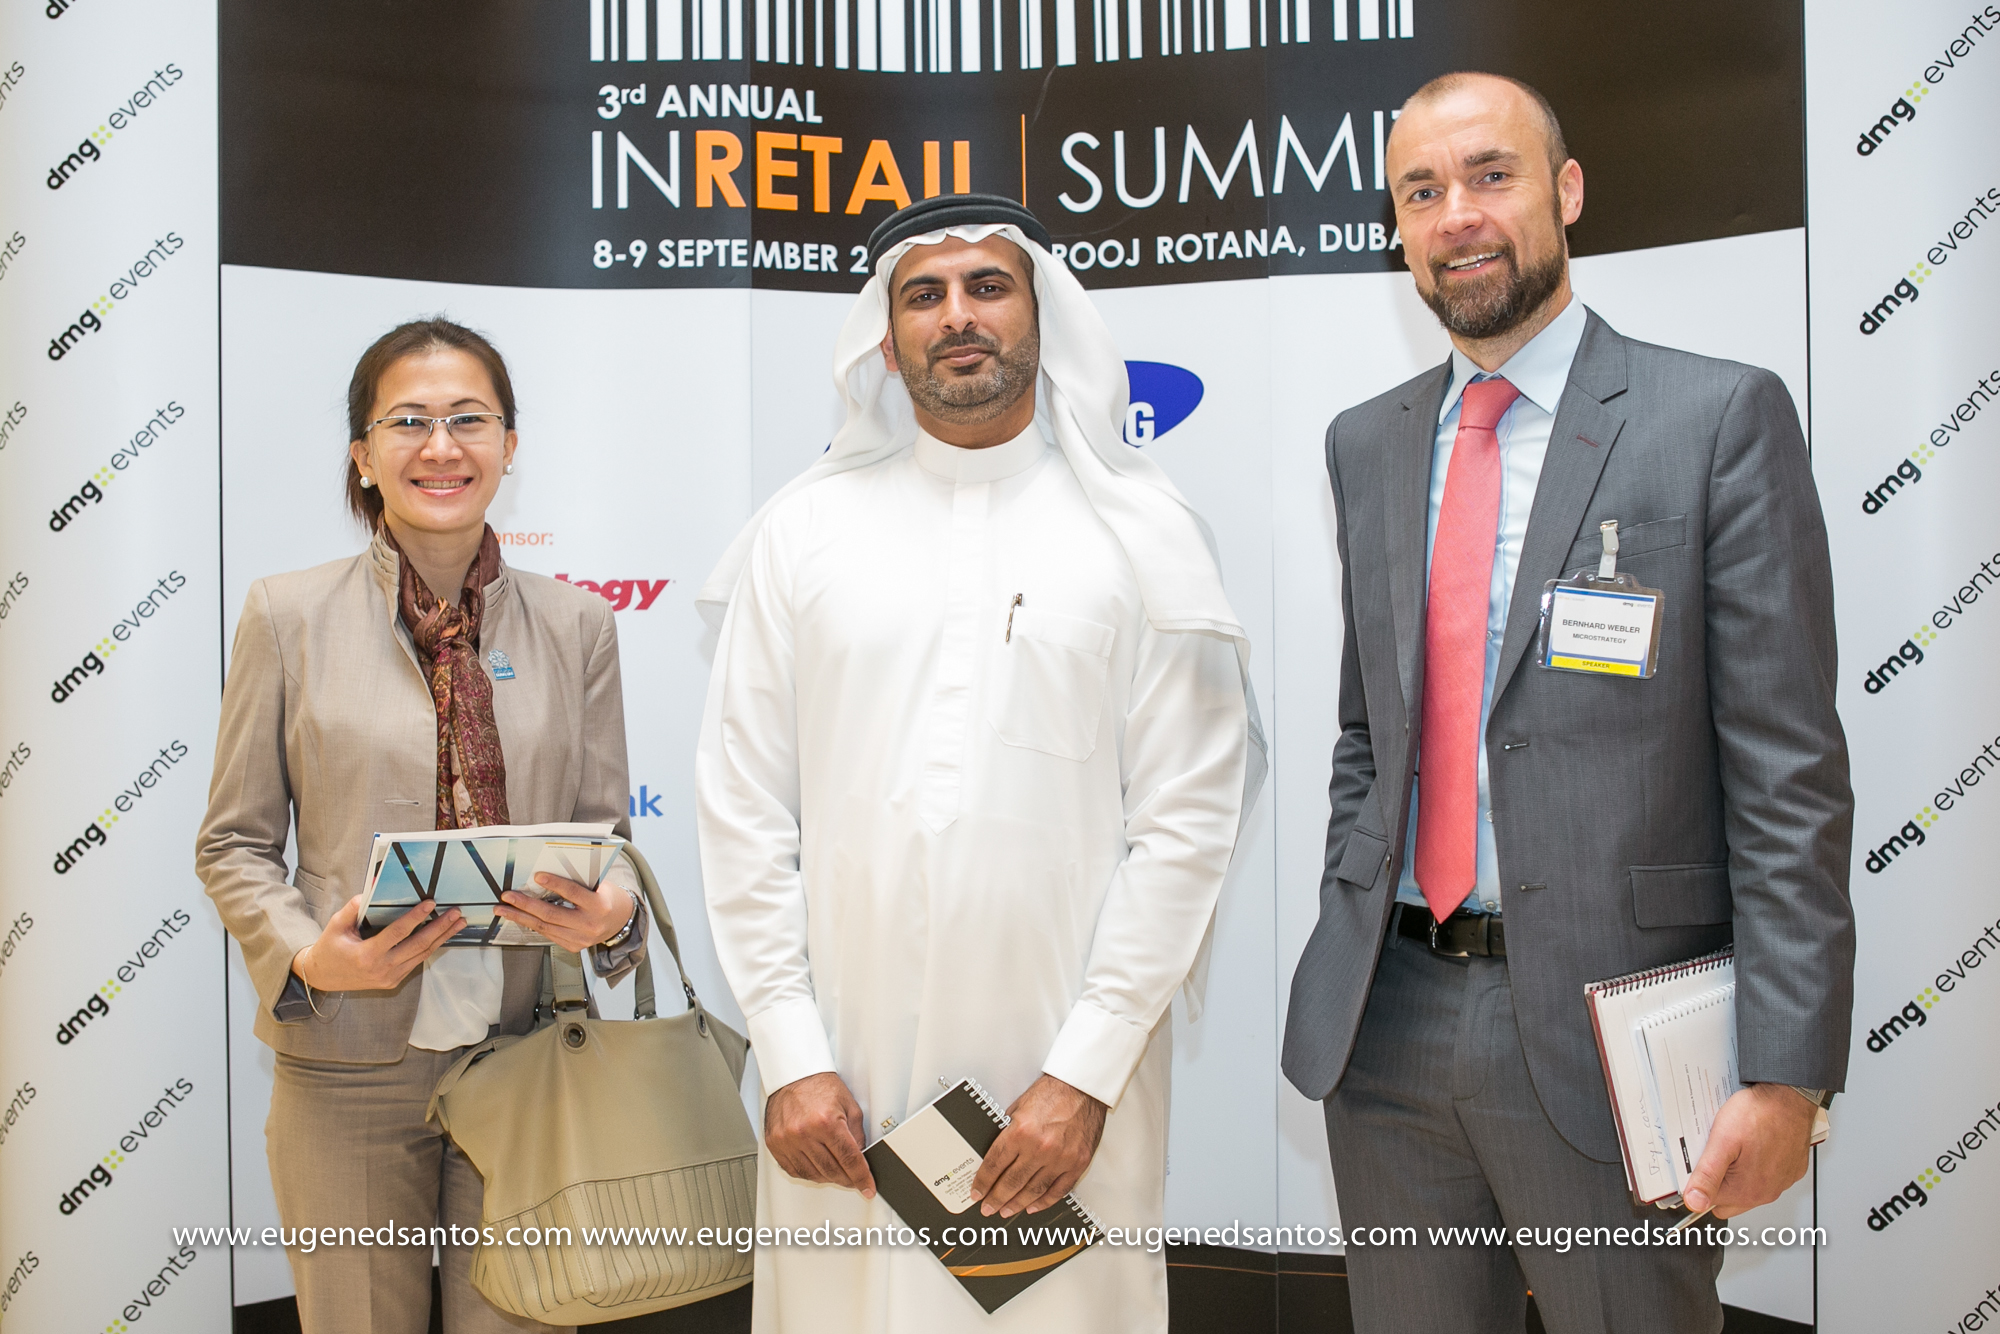 In Retail Summit 2013